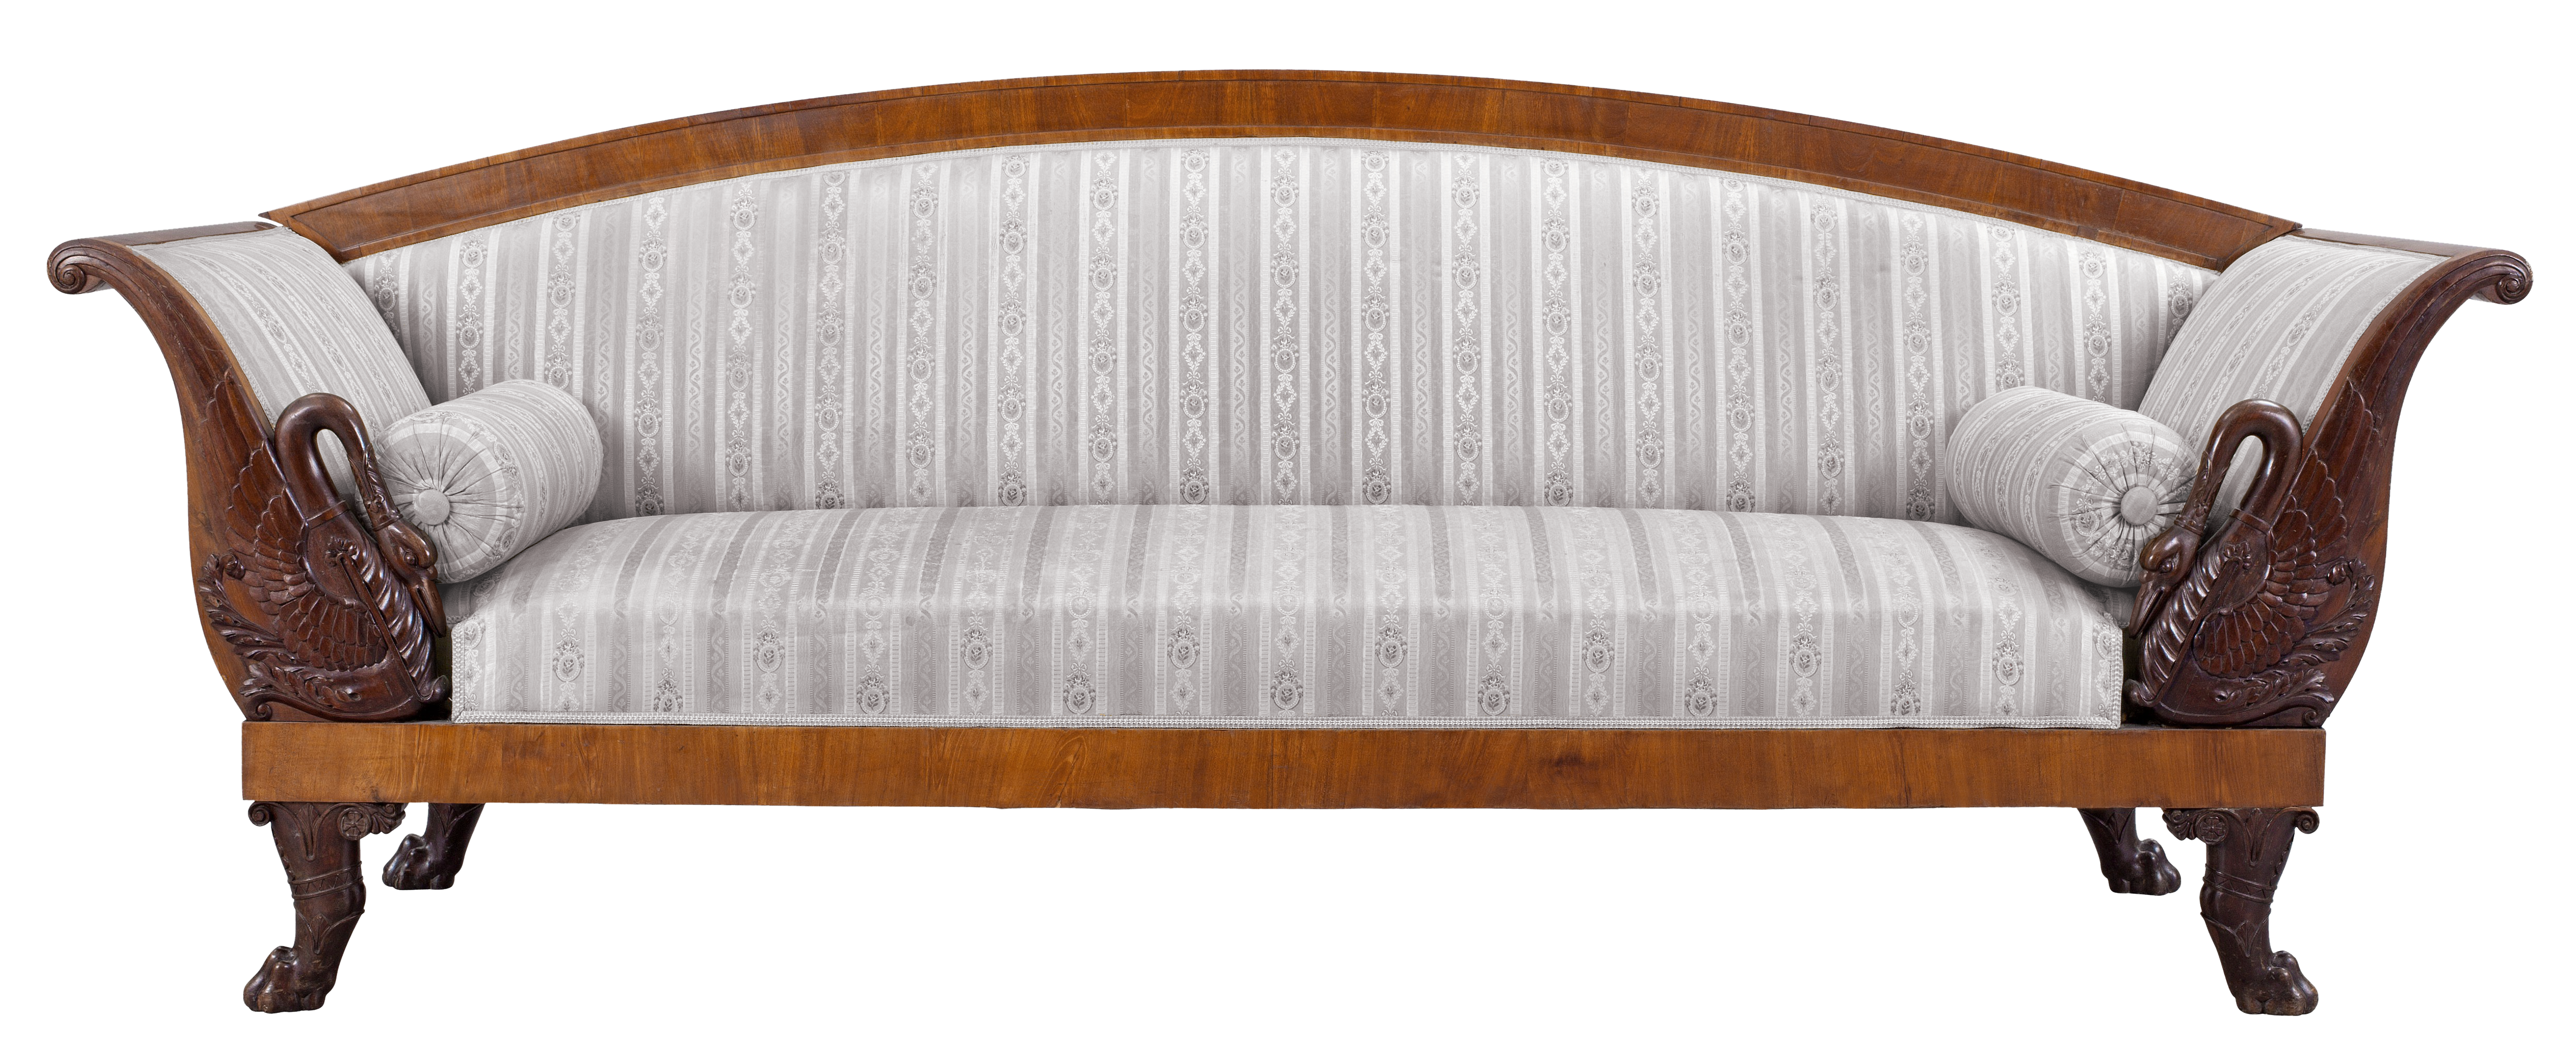 Furniture Transparent Background PNG Images